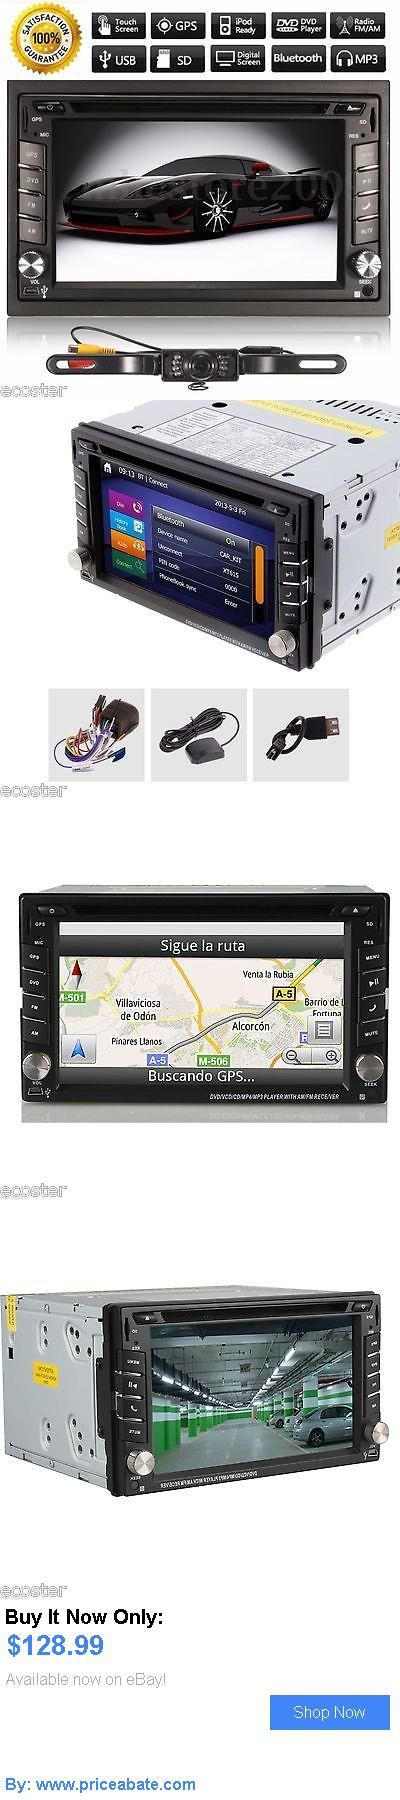 Vehicle Electronics And GPS: 6.2 Gps Navigation Hd 2Din Car Stereo Dvd Player Bluetooth Ipod Mp3 Tv  Camera BUY IT NOW ONLY: $128.99 #priceabateVehicleElectronicsAndGPS OR #priceabate